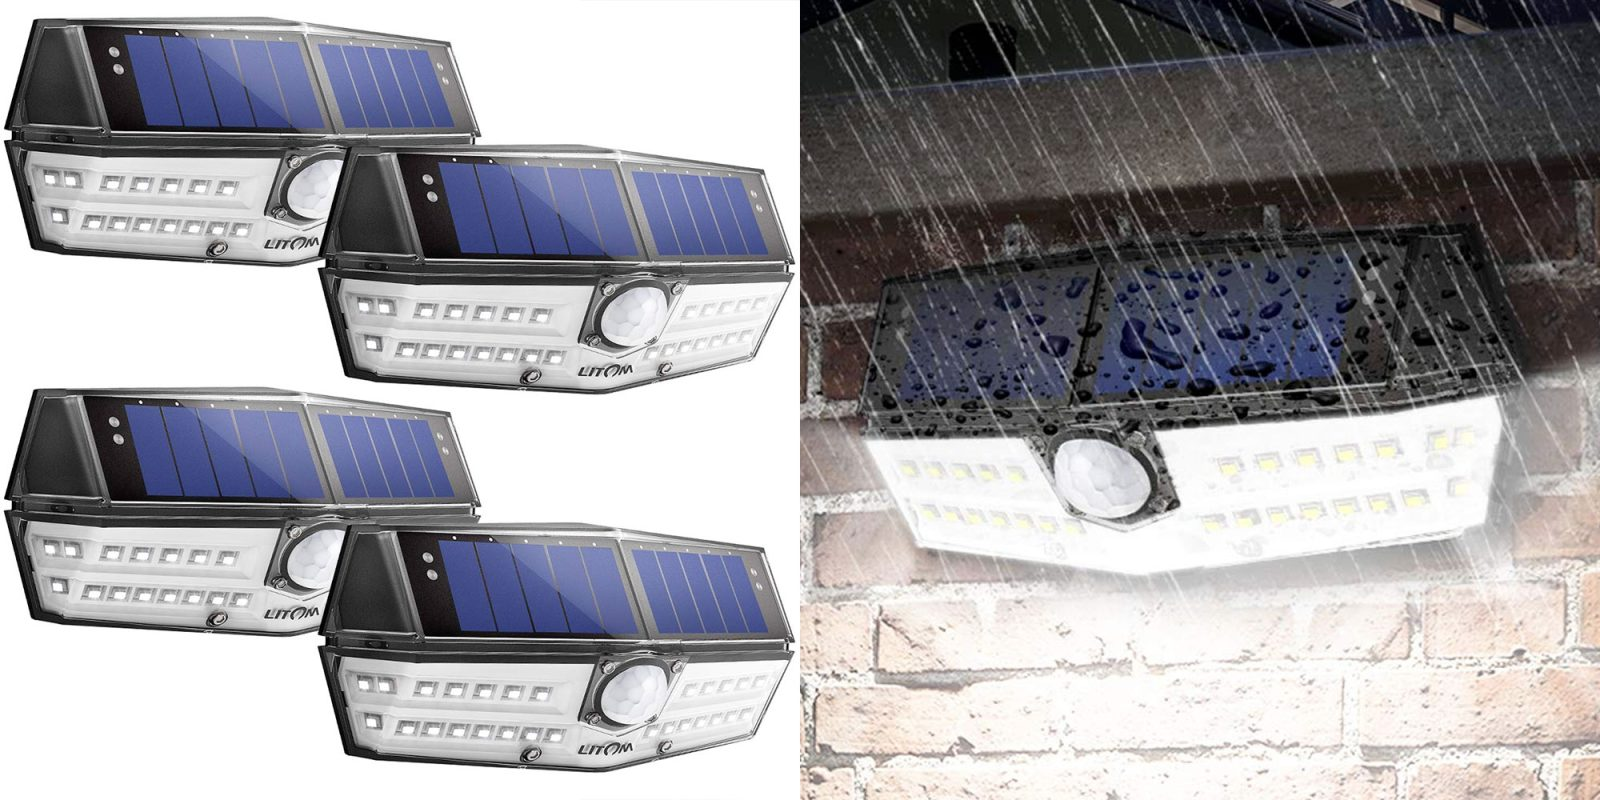 Illuminate up to 860 sq. ft. of yard w/ 4 LED solar lights at $28.50 (35% off)